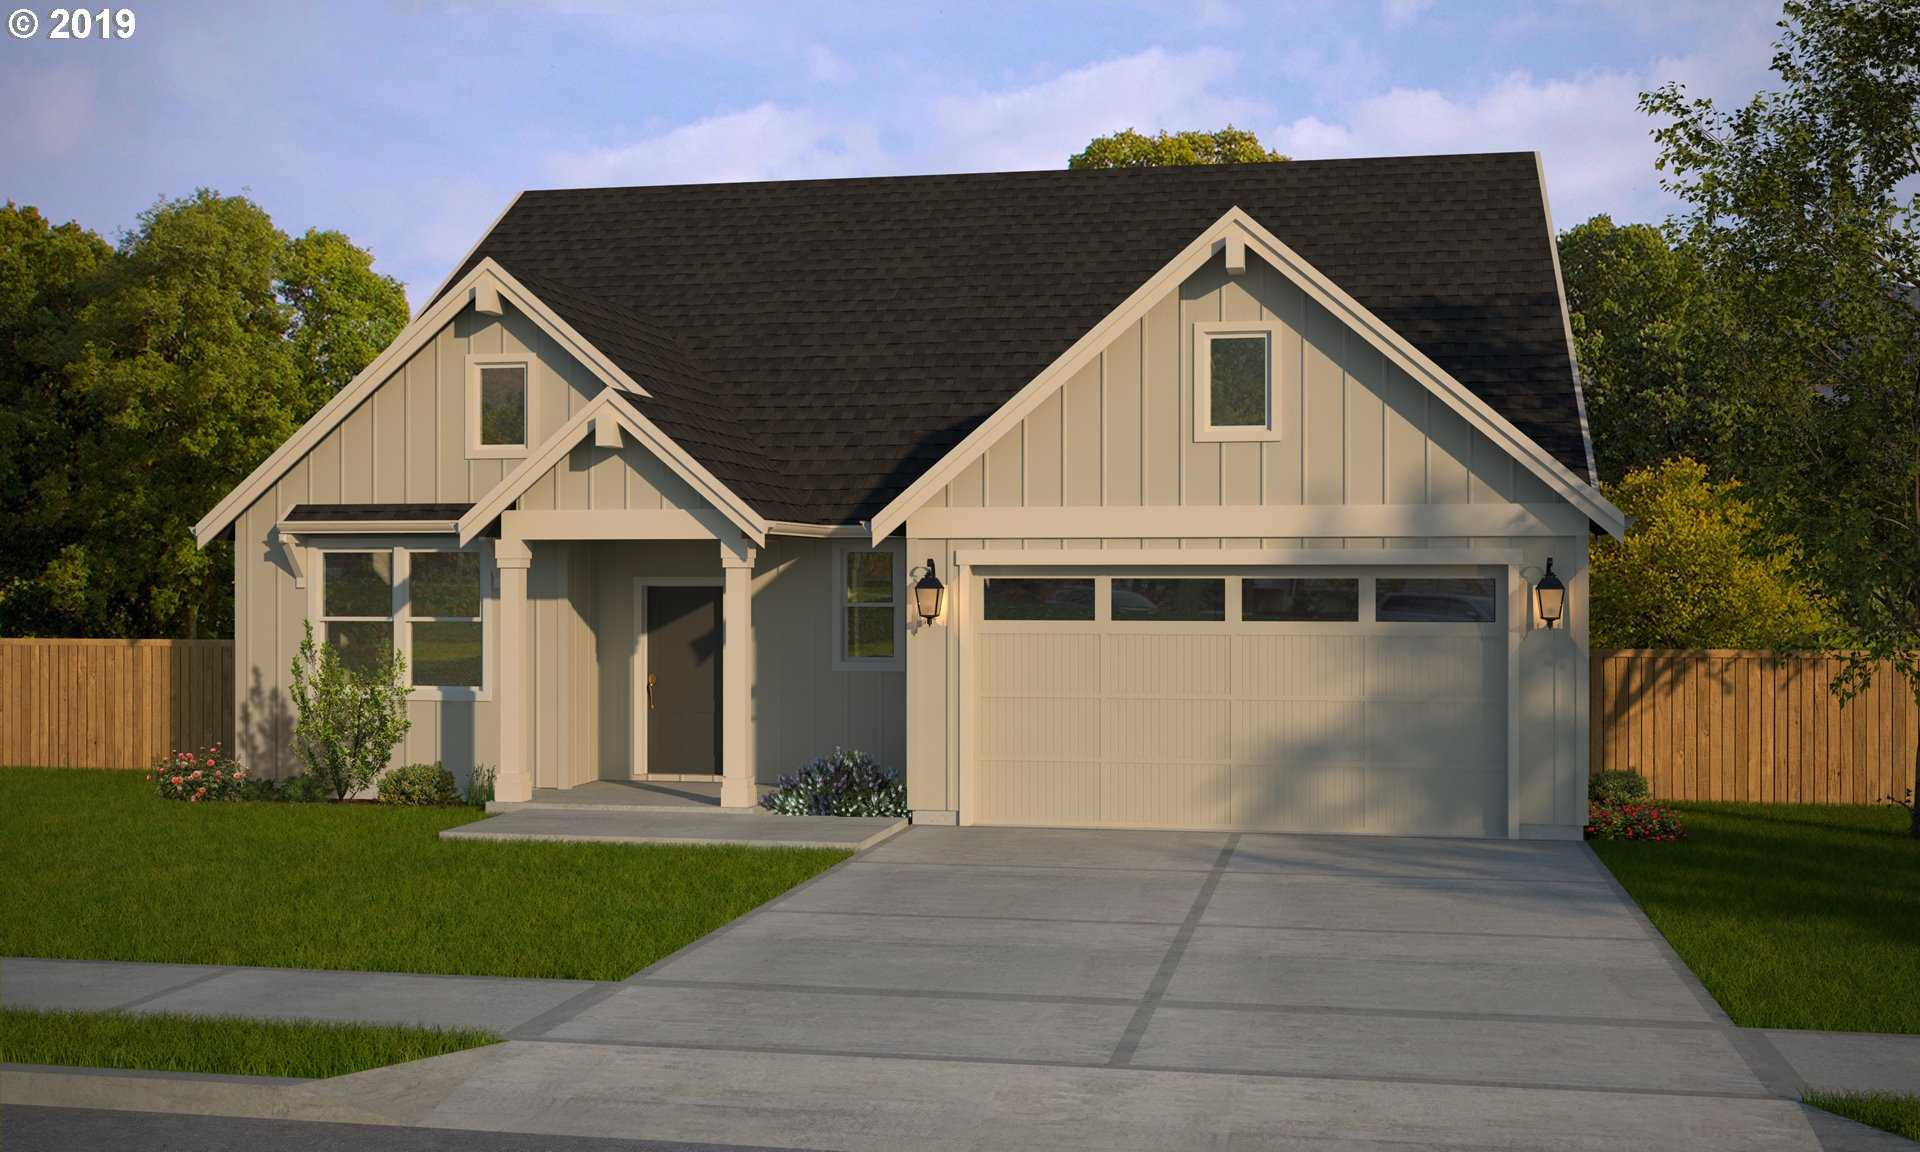 $559,950 - 4Br/3Ba -  for Sale in Timber Park, Canby